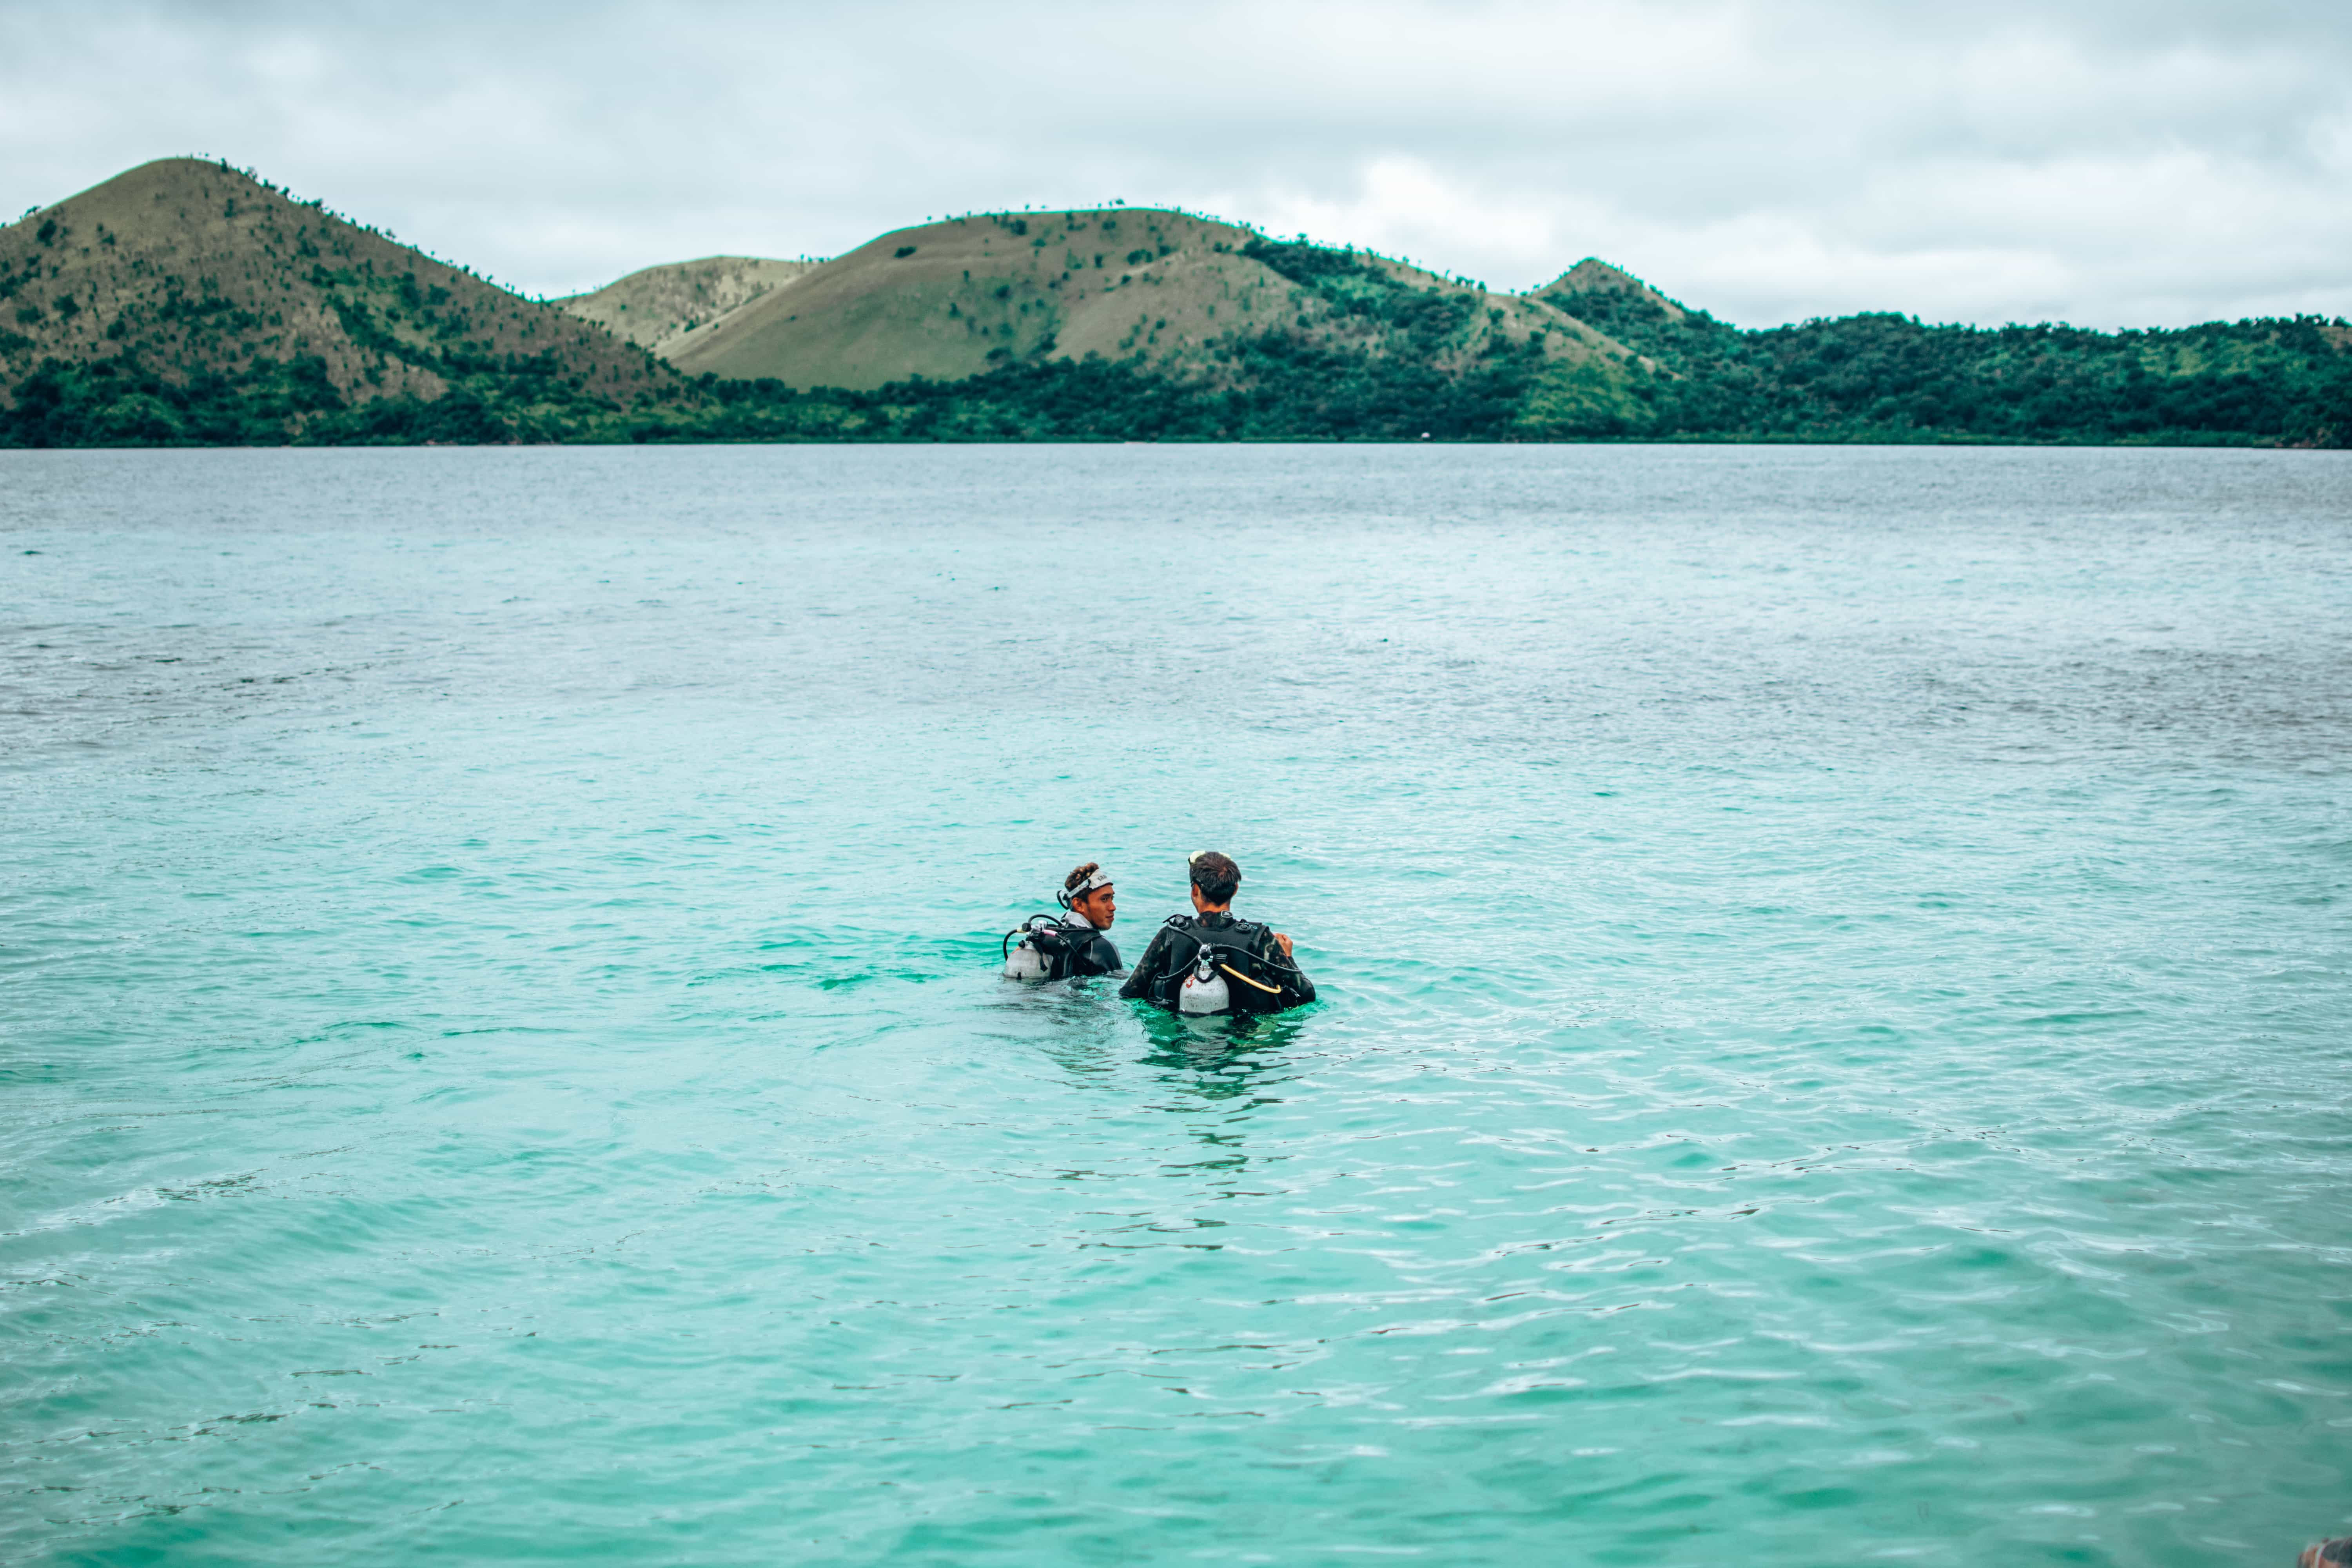 We are diving in Coron, Palawan Philippines with Kkday Travel by Gamintraveler.